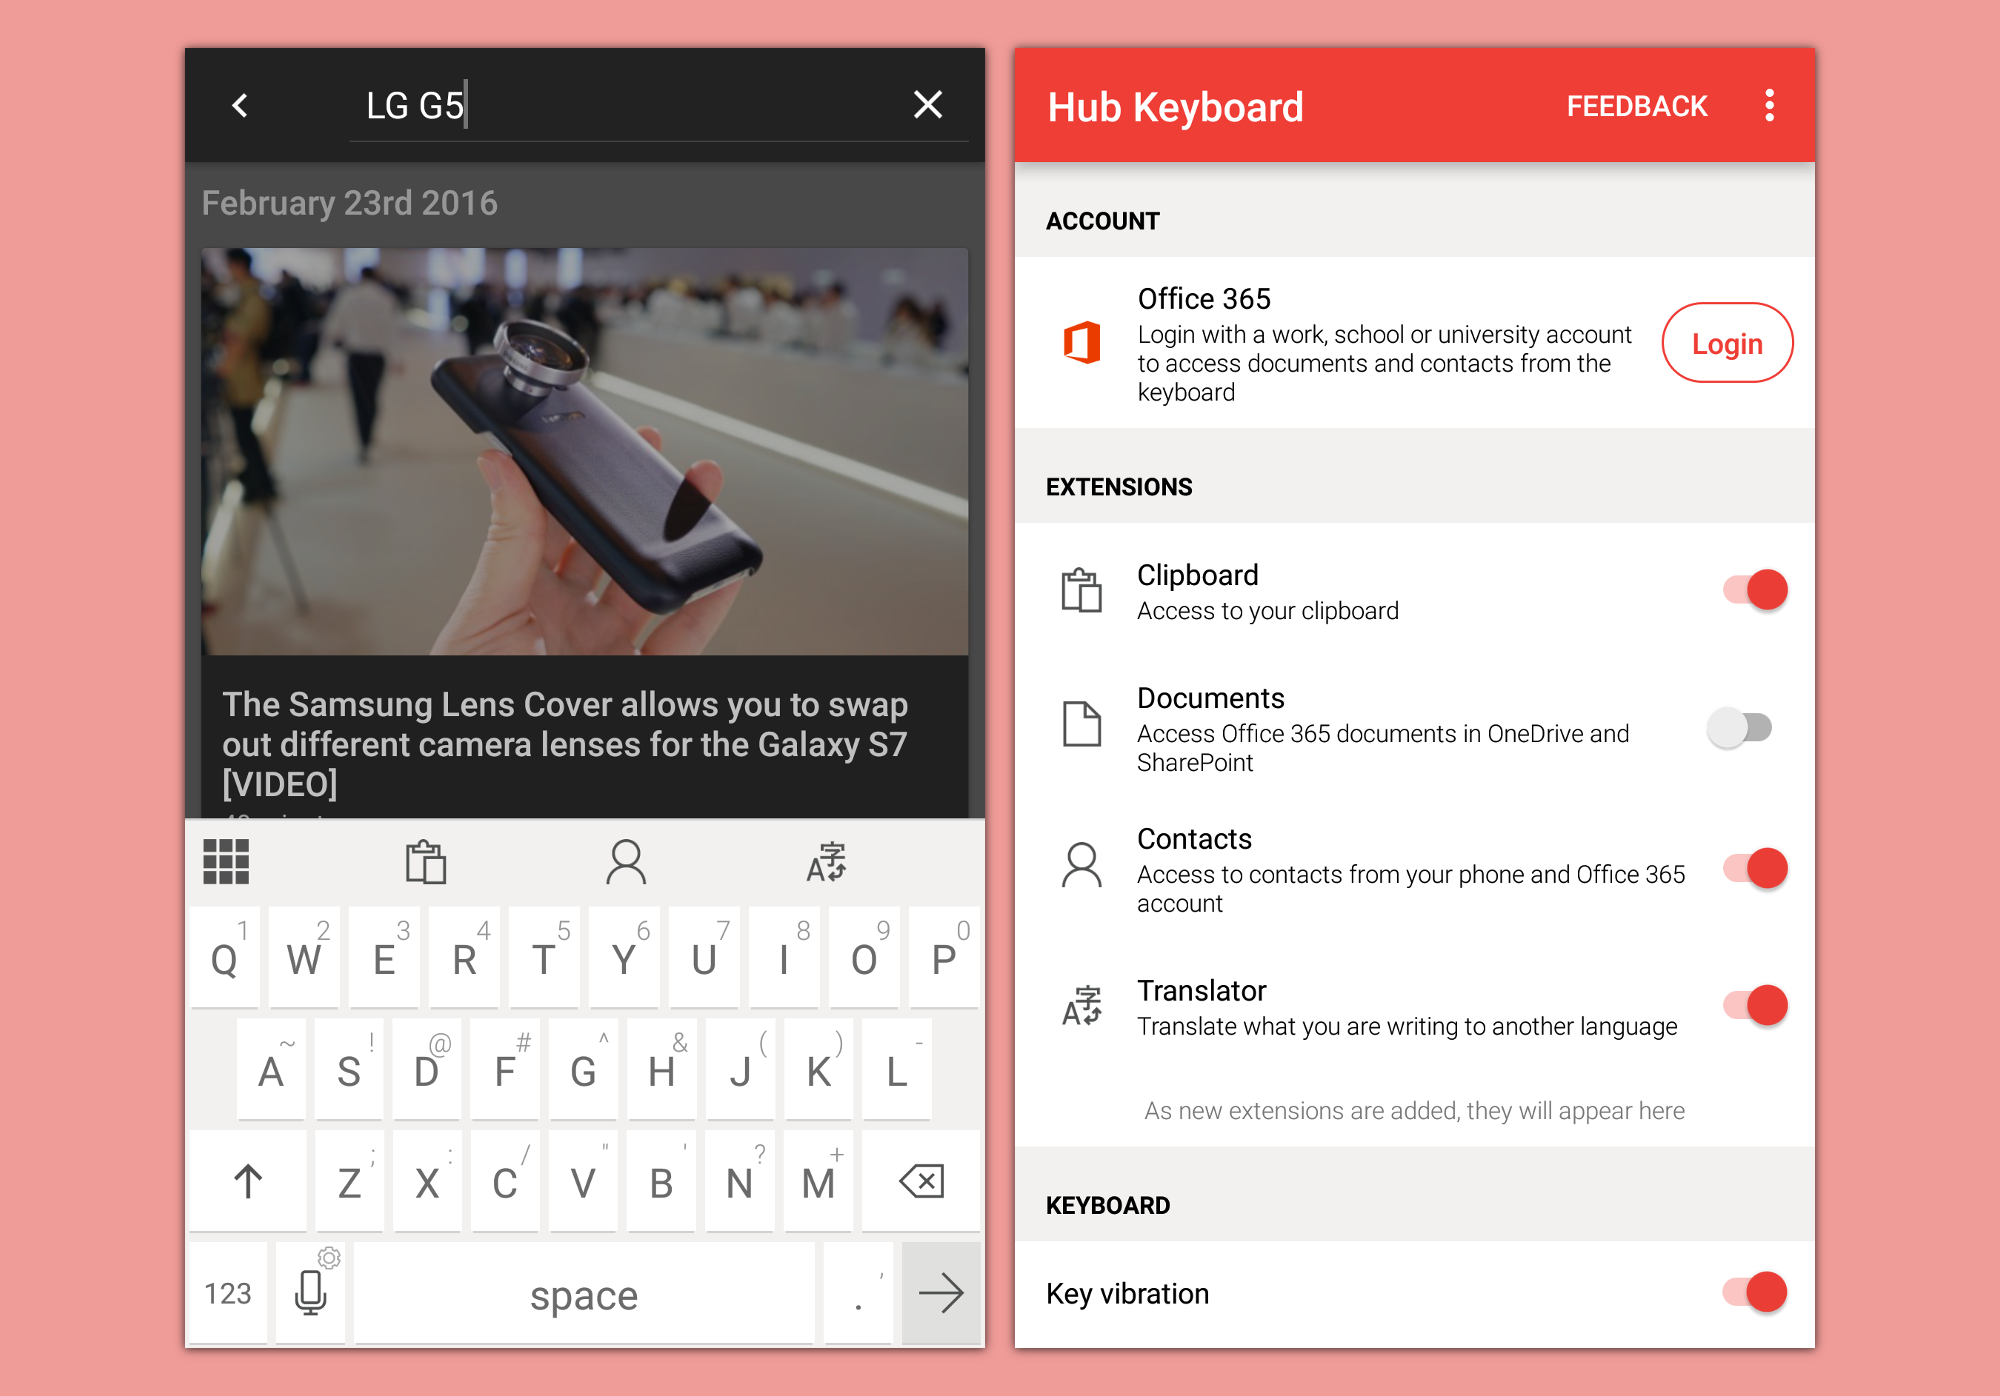 Microsoft Launches Hub Keyboard On Android